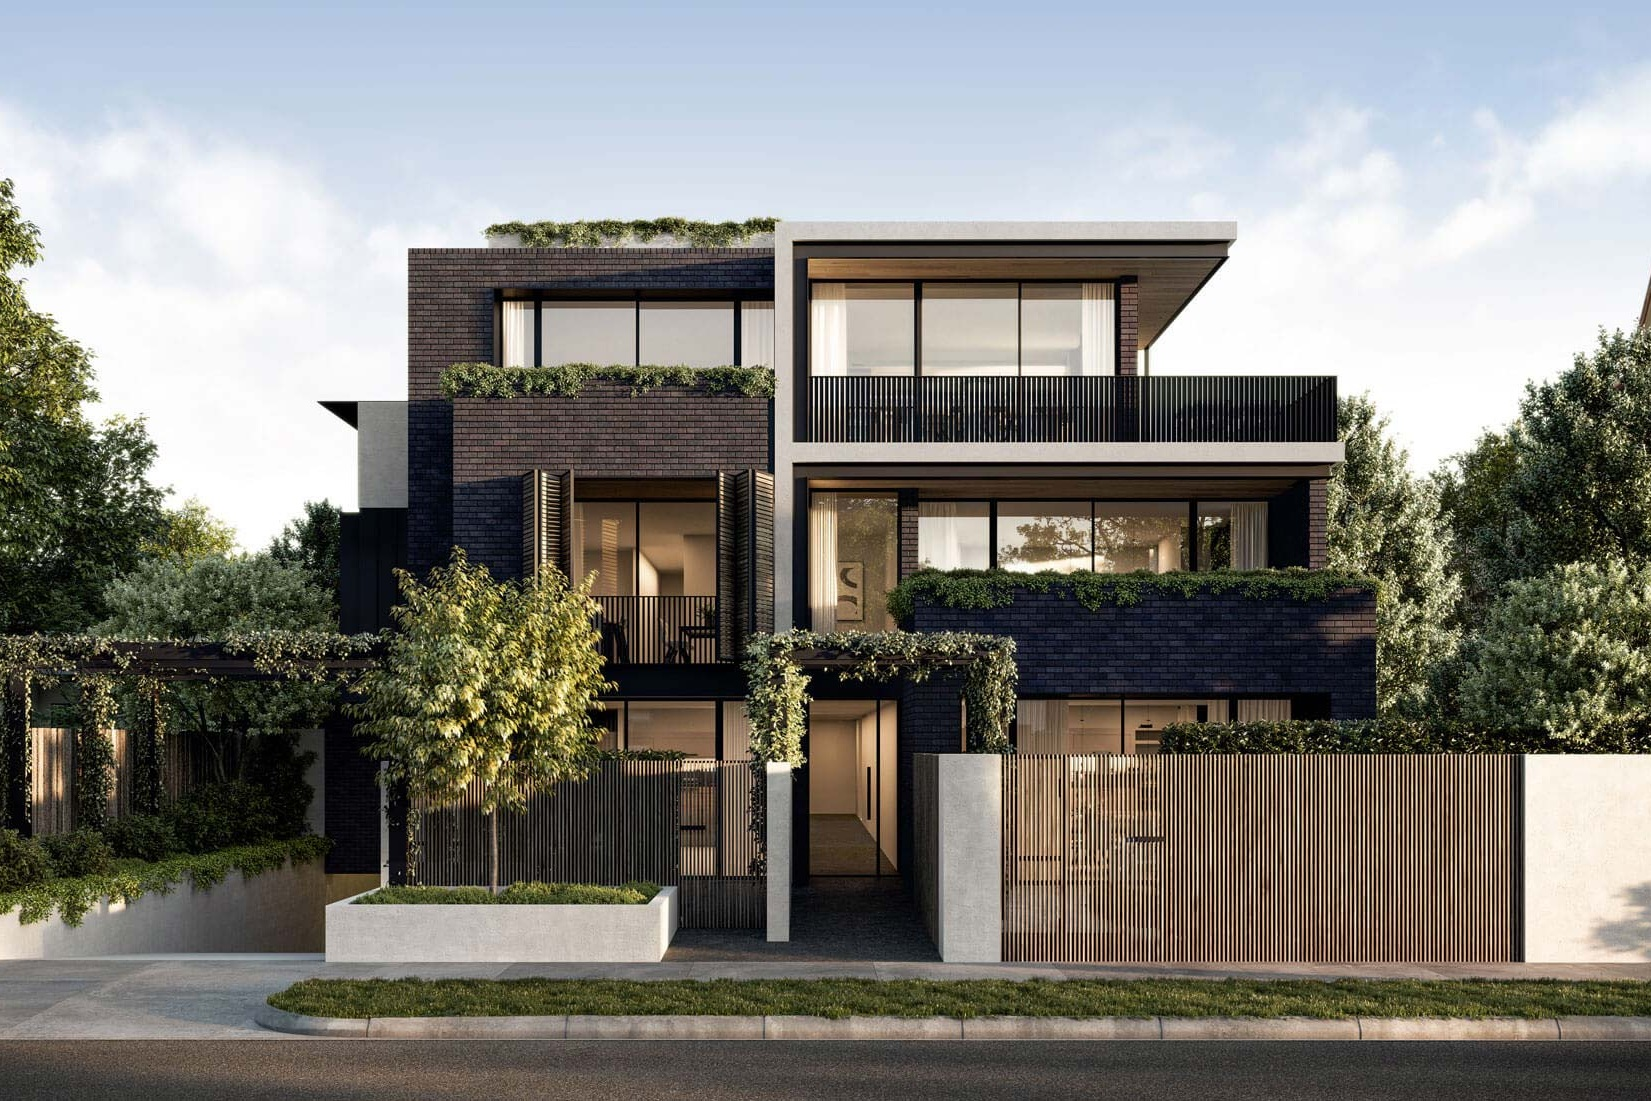 First Mortgage - Construction LoanMelbourne Metro - Loan was approved with a condition of obtaining two pre-sales out of ten apartments. The reduced presale requirement enabled the developer to move into construction earlyLVR • INVESTMENT • RETURN70% • $3,500,000 • 15% p.a.